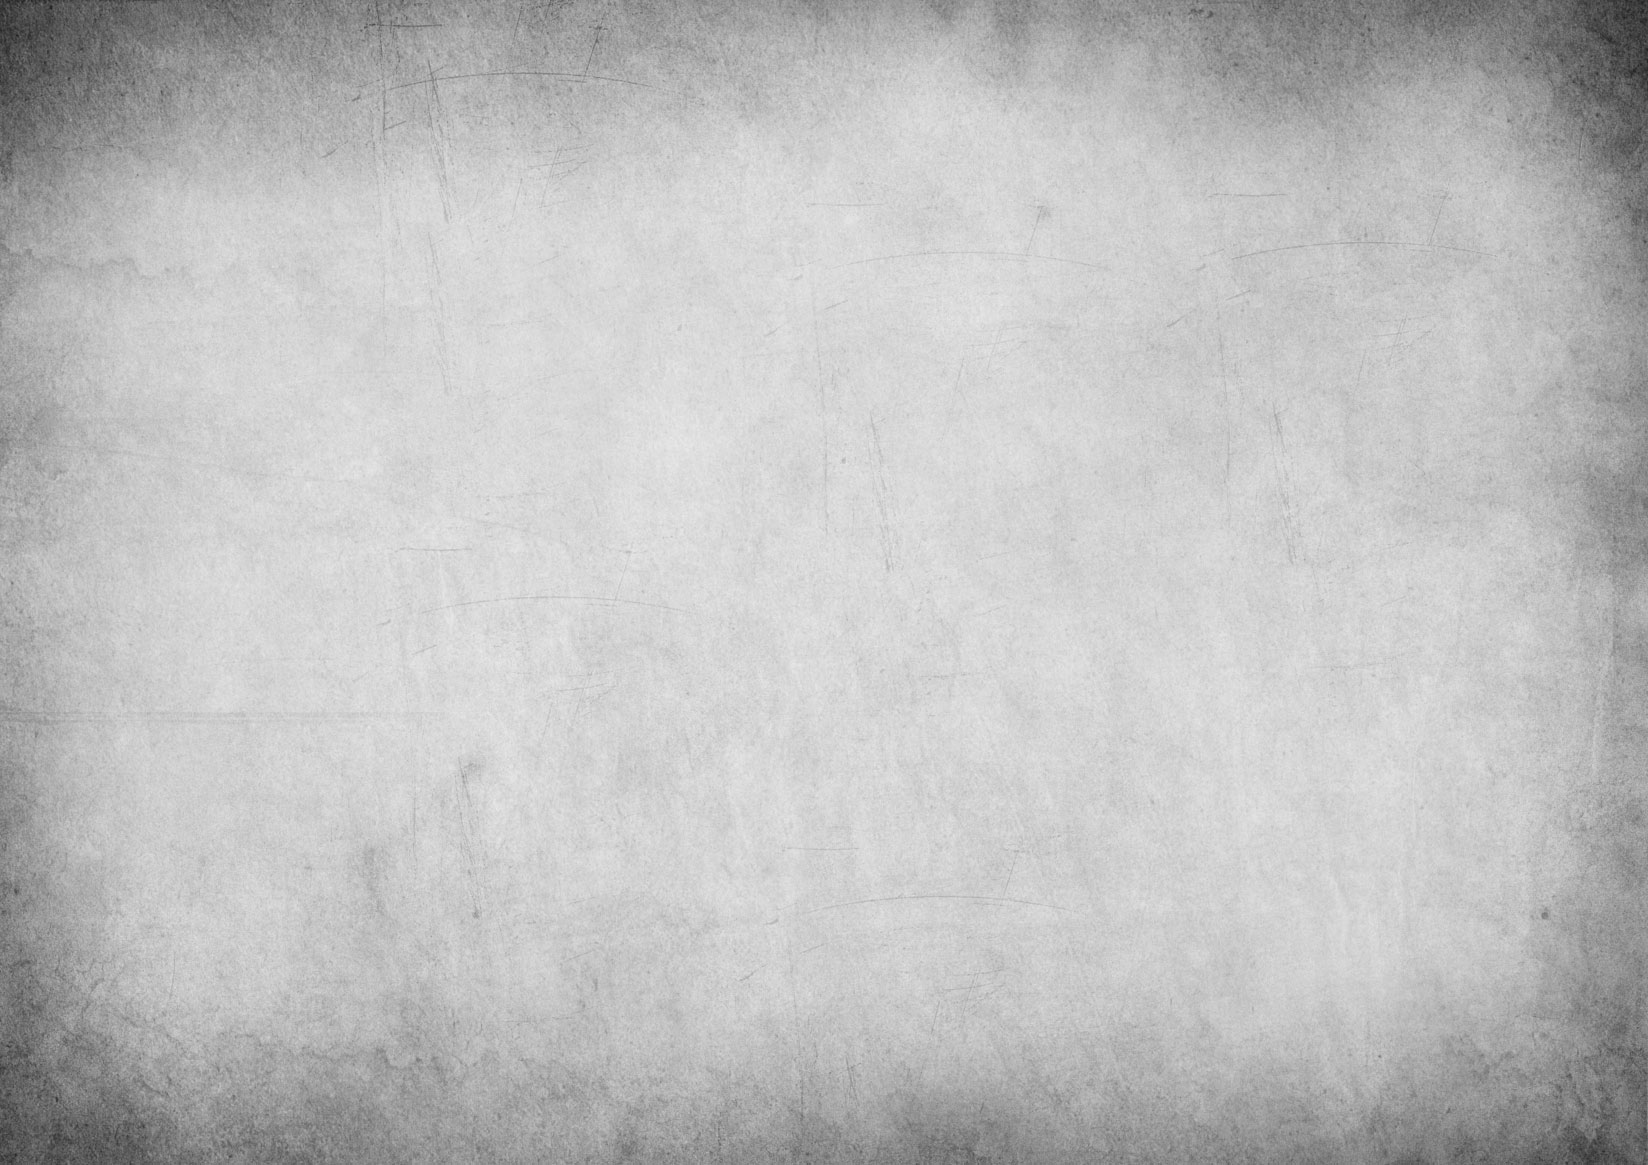 Grey background wallpaper wallpapersafari for Grey and white wallpaper